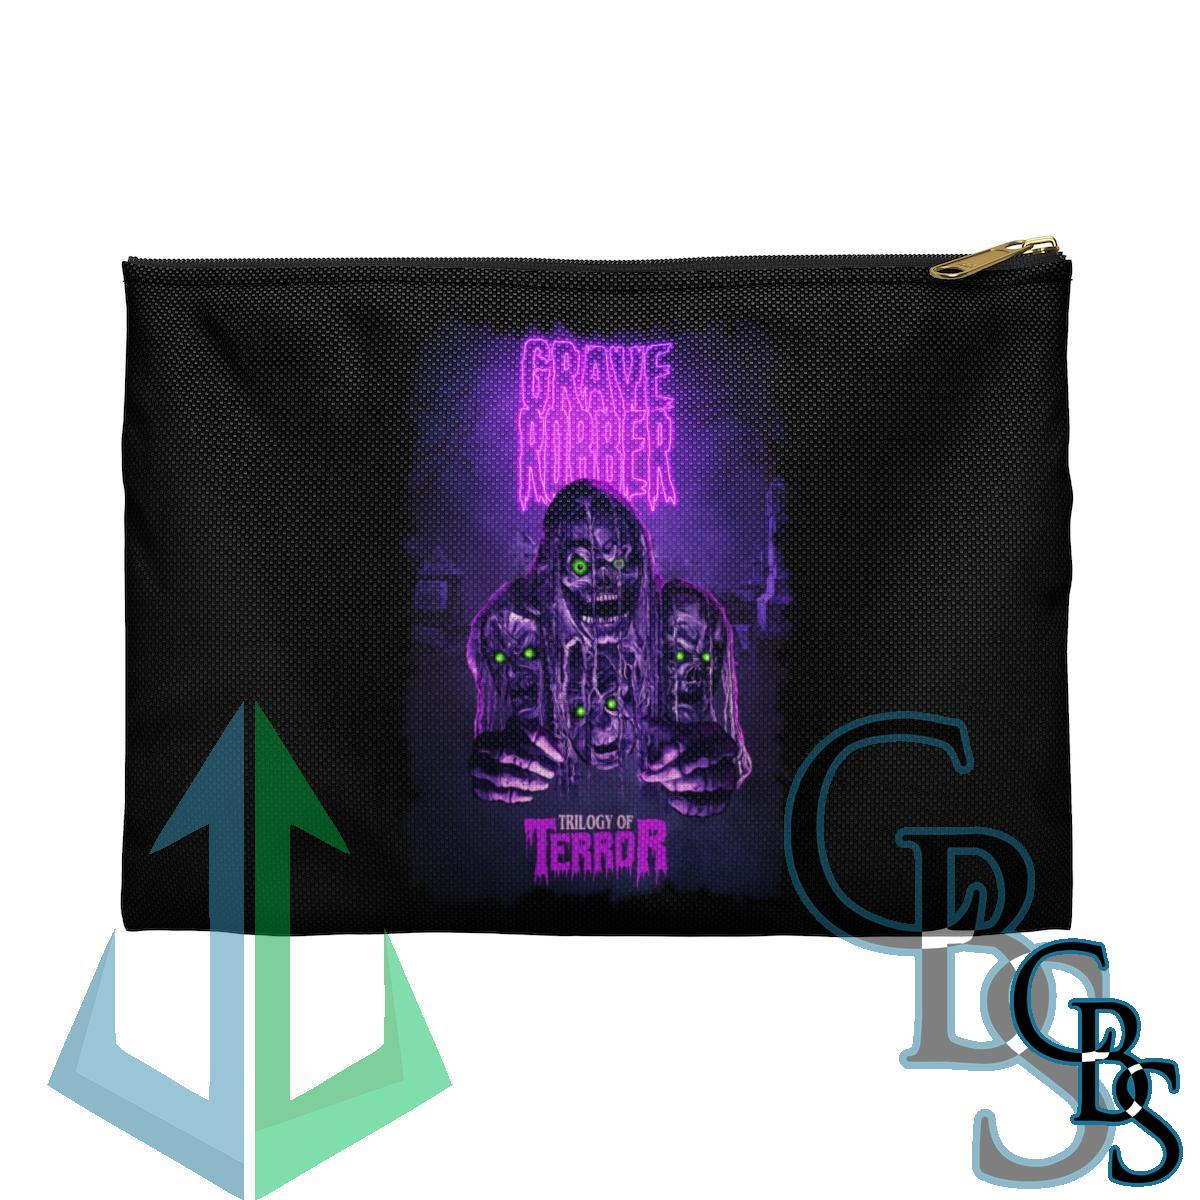 Grave Robber – Trilogy of Terror Accessory Pouch